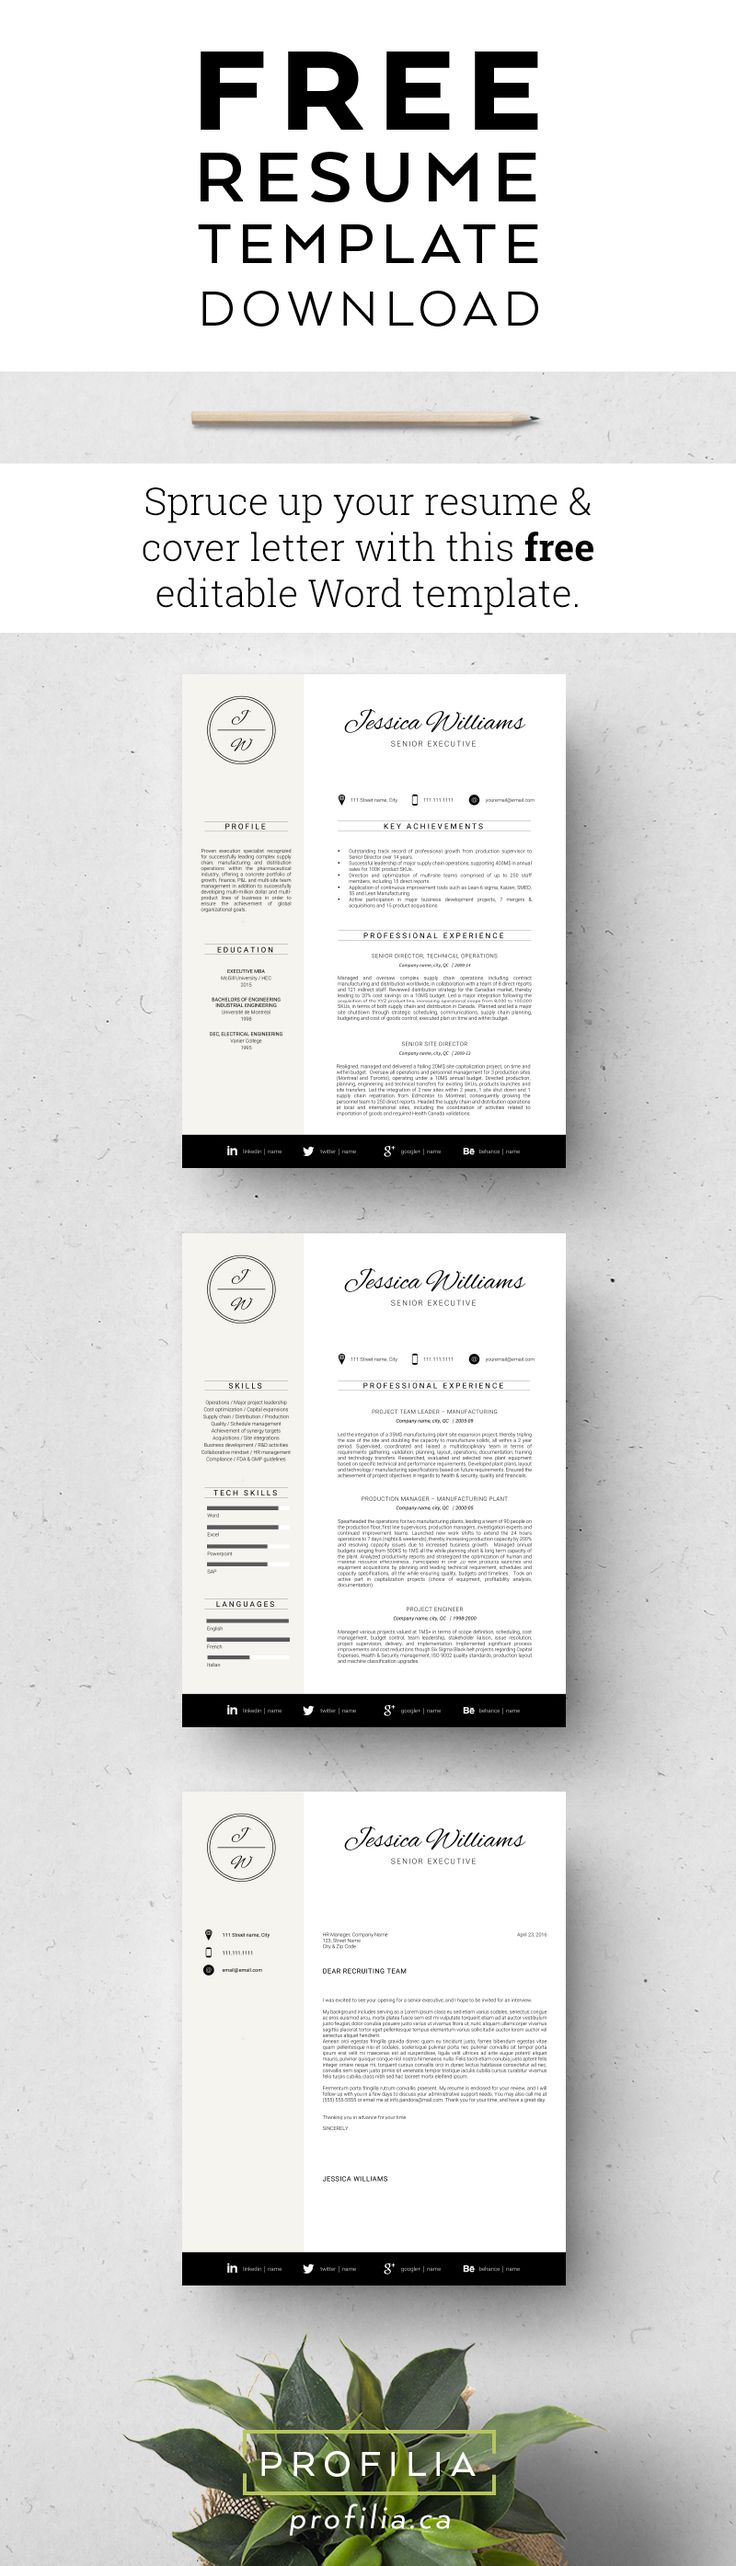 free resume template refresh your job search with this free resume cover - Free Templates For Cover Letter For A Resume